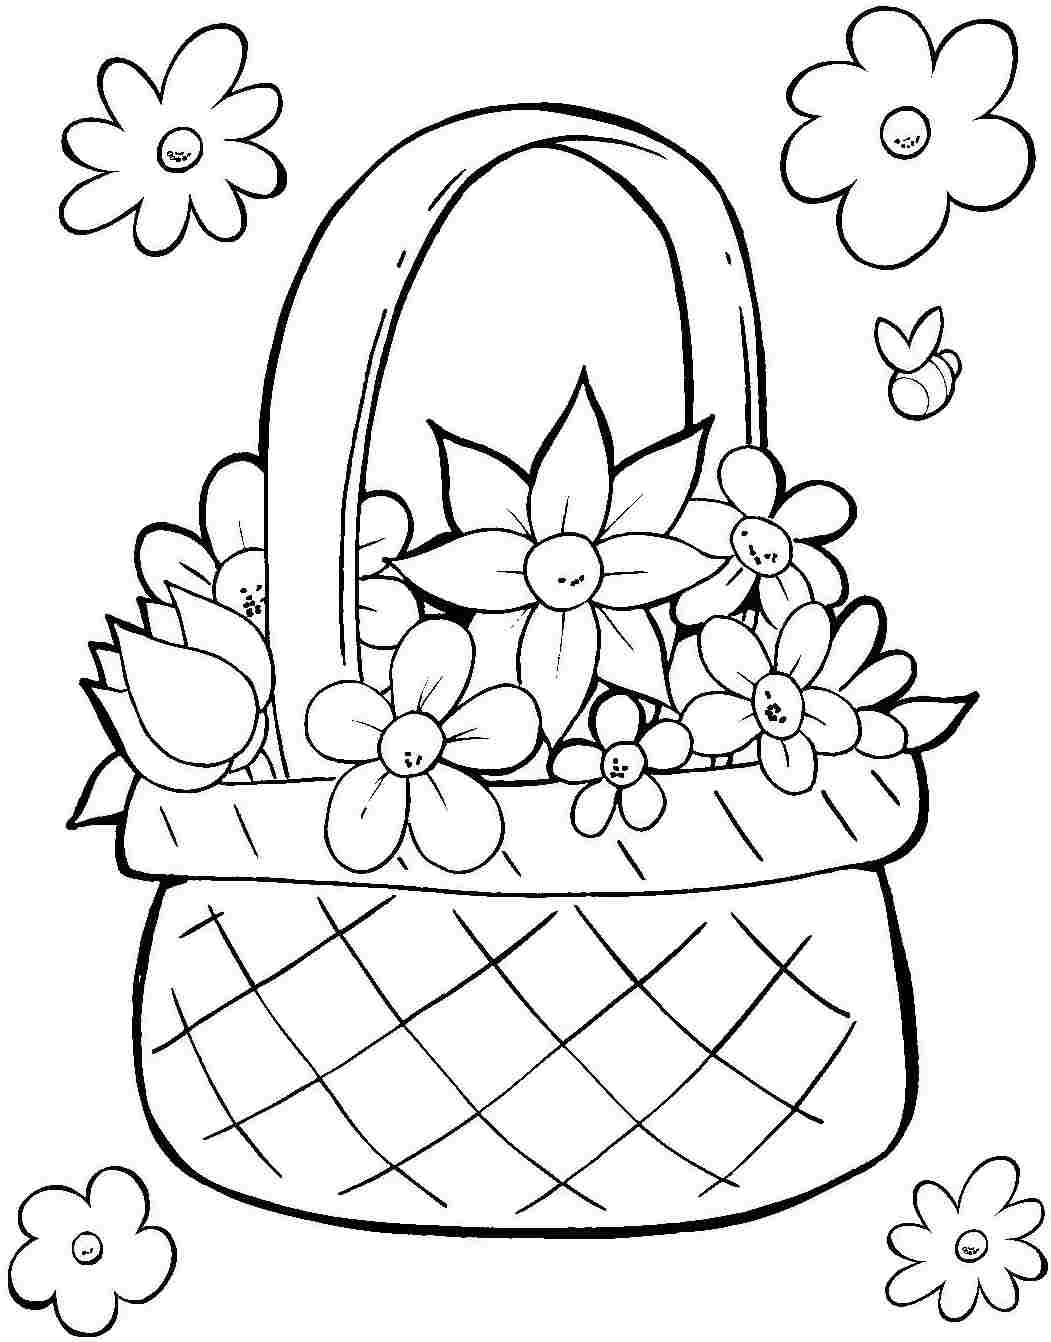 Flower Basket Colouring Pages At Getcolorings